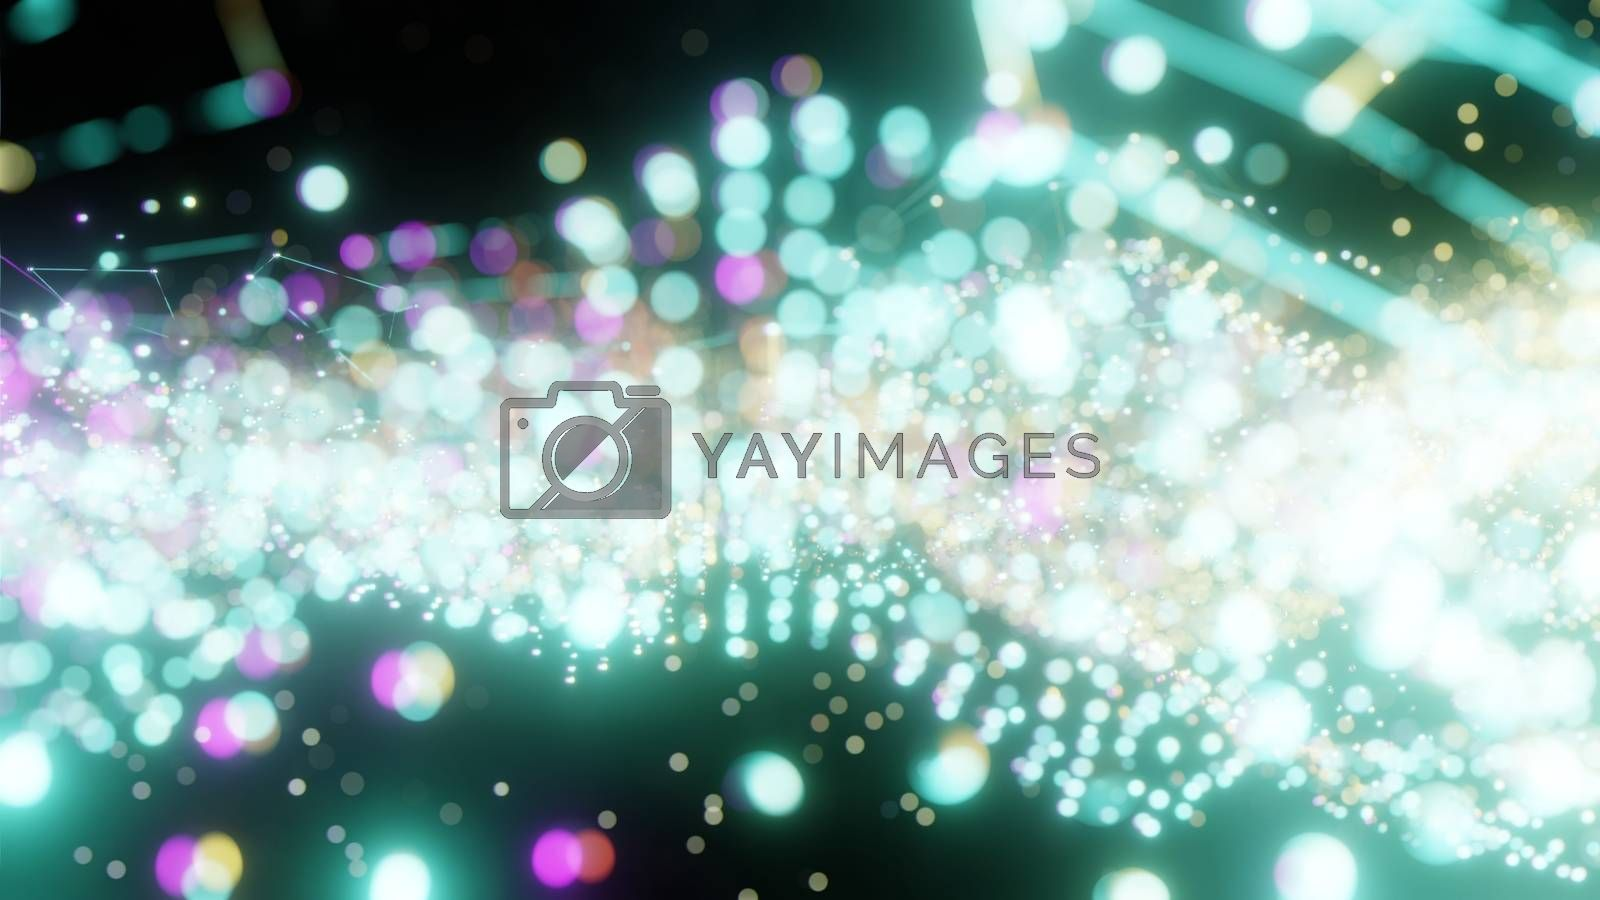 Plexus of abstract green dots on a black background. Loop animations. 3D illustration